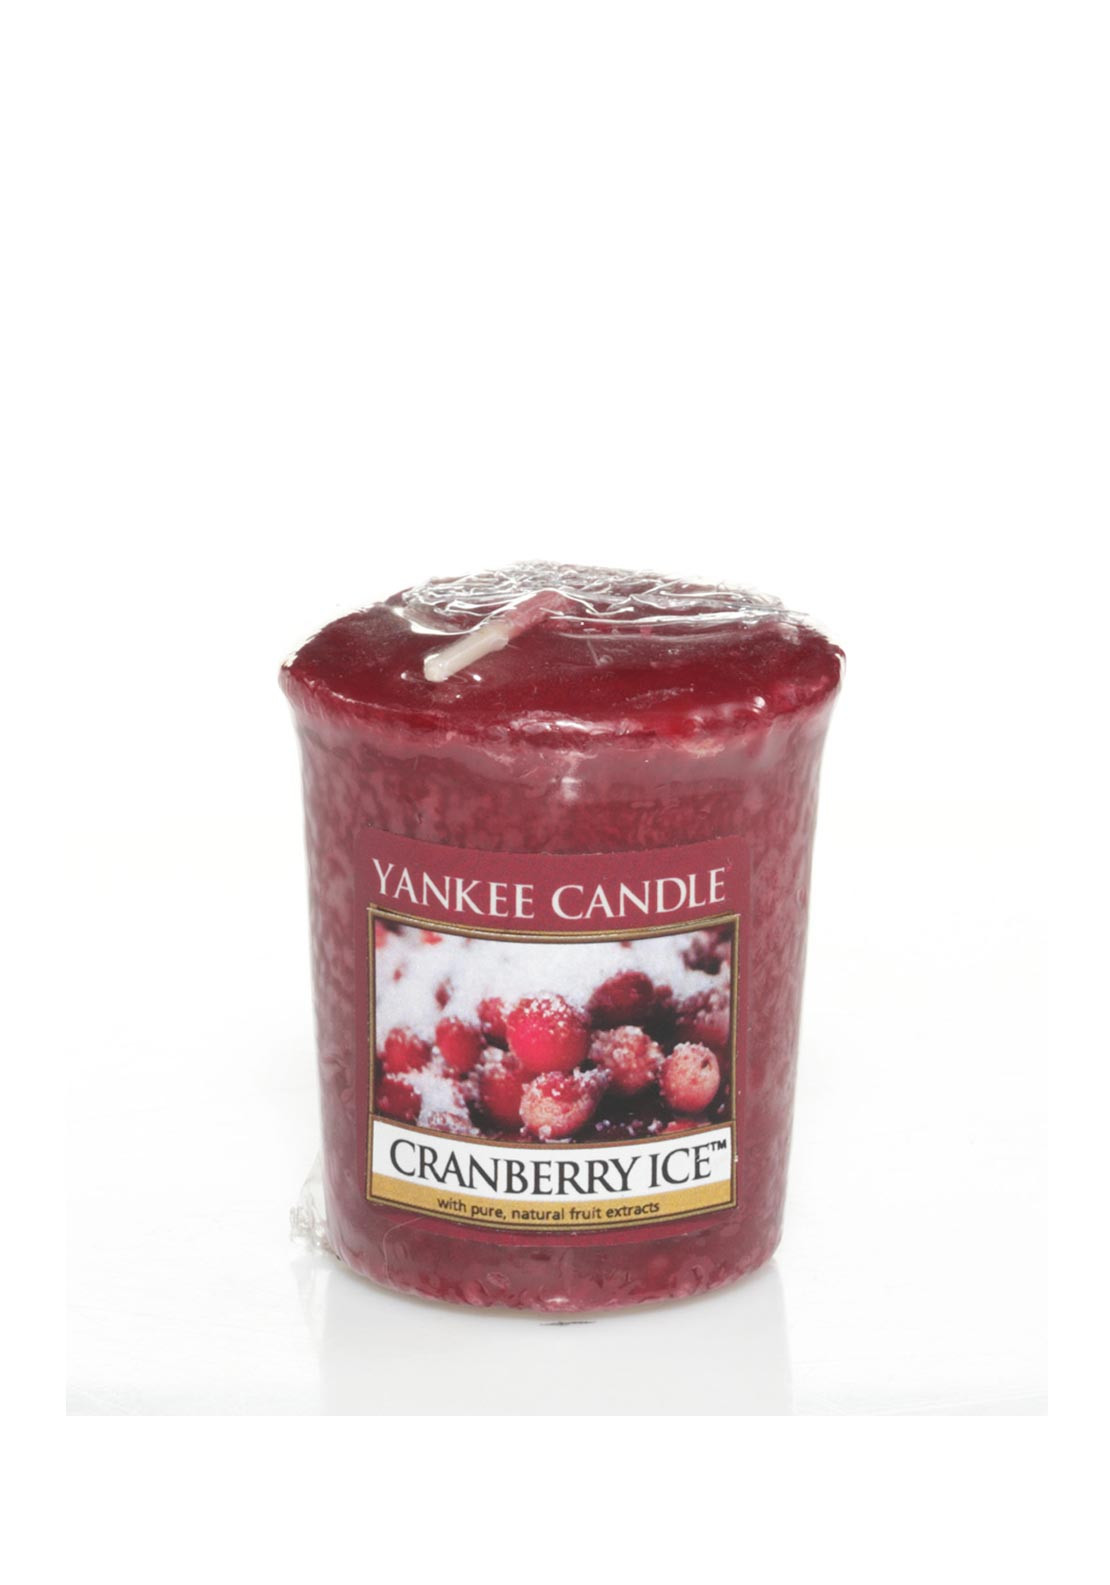 Yankee Candle Sampler Votive Candle, Cranberry Ice